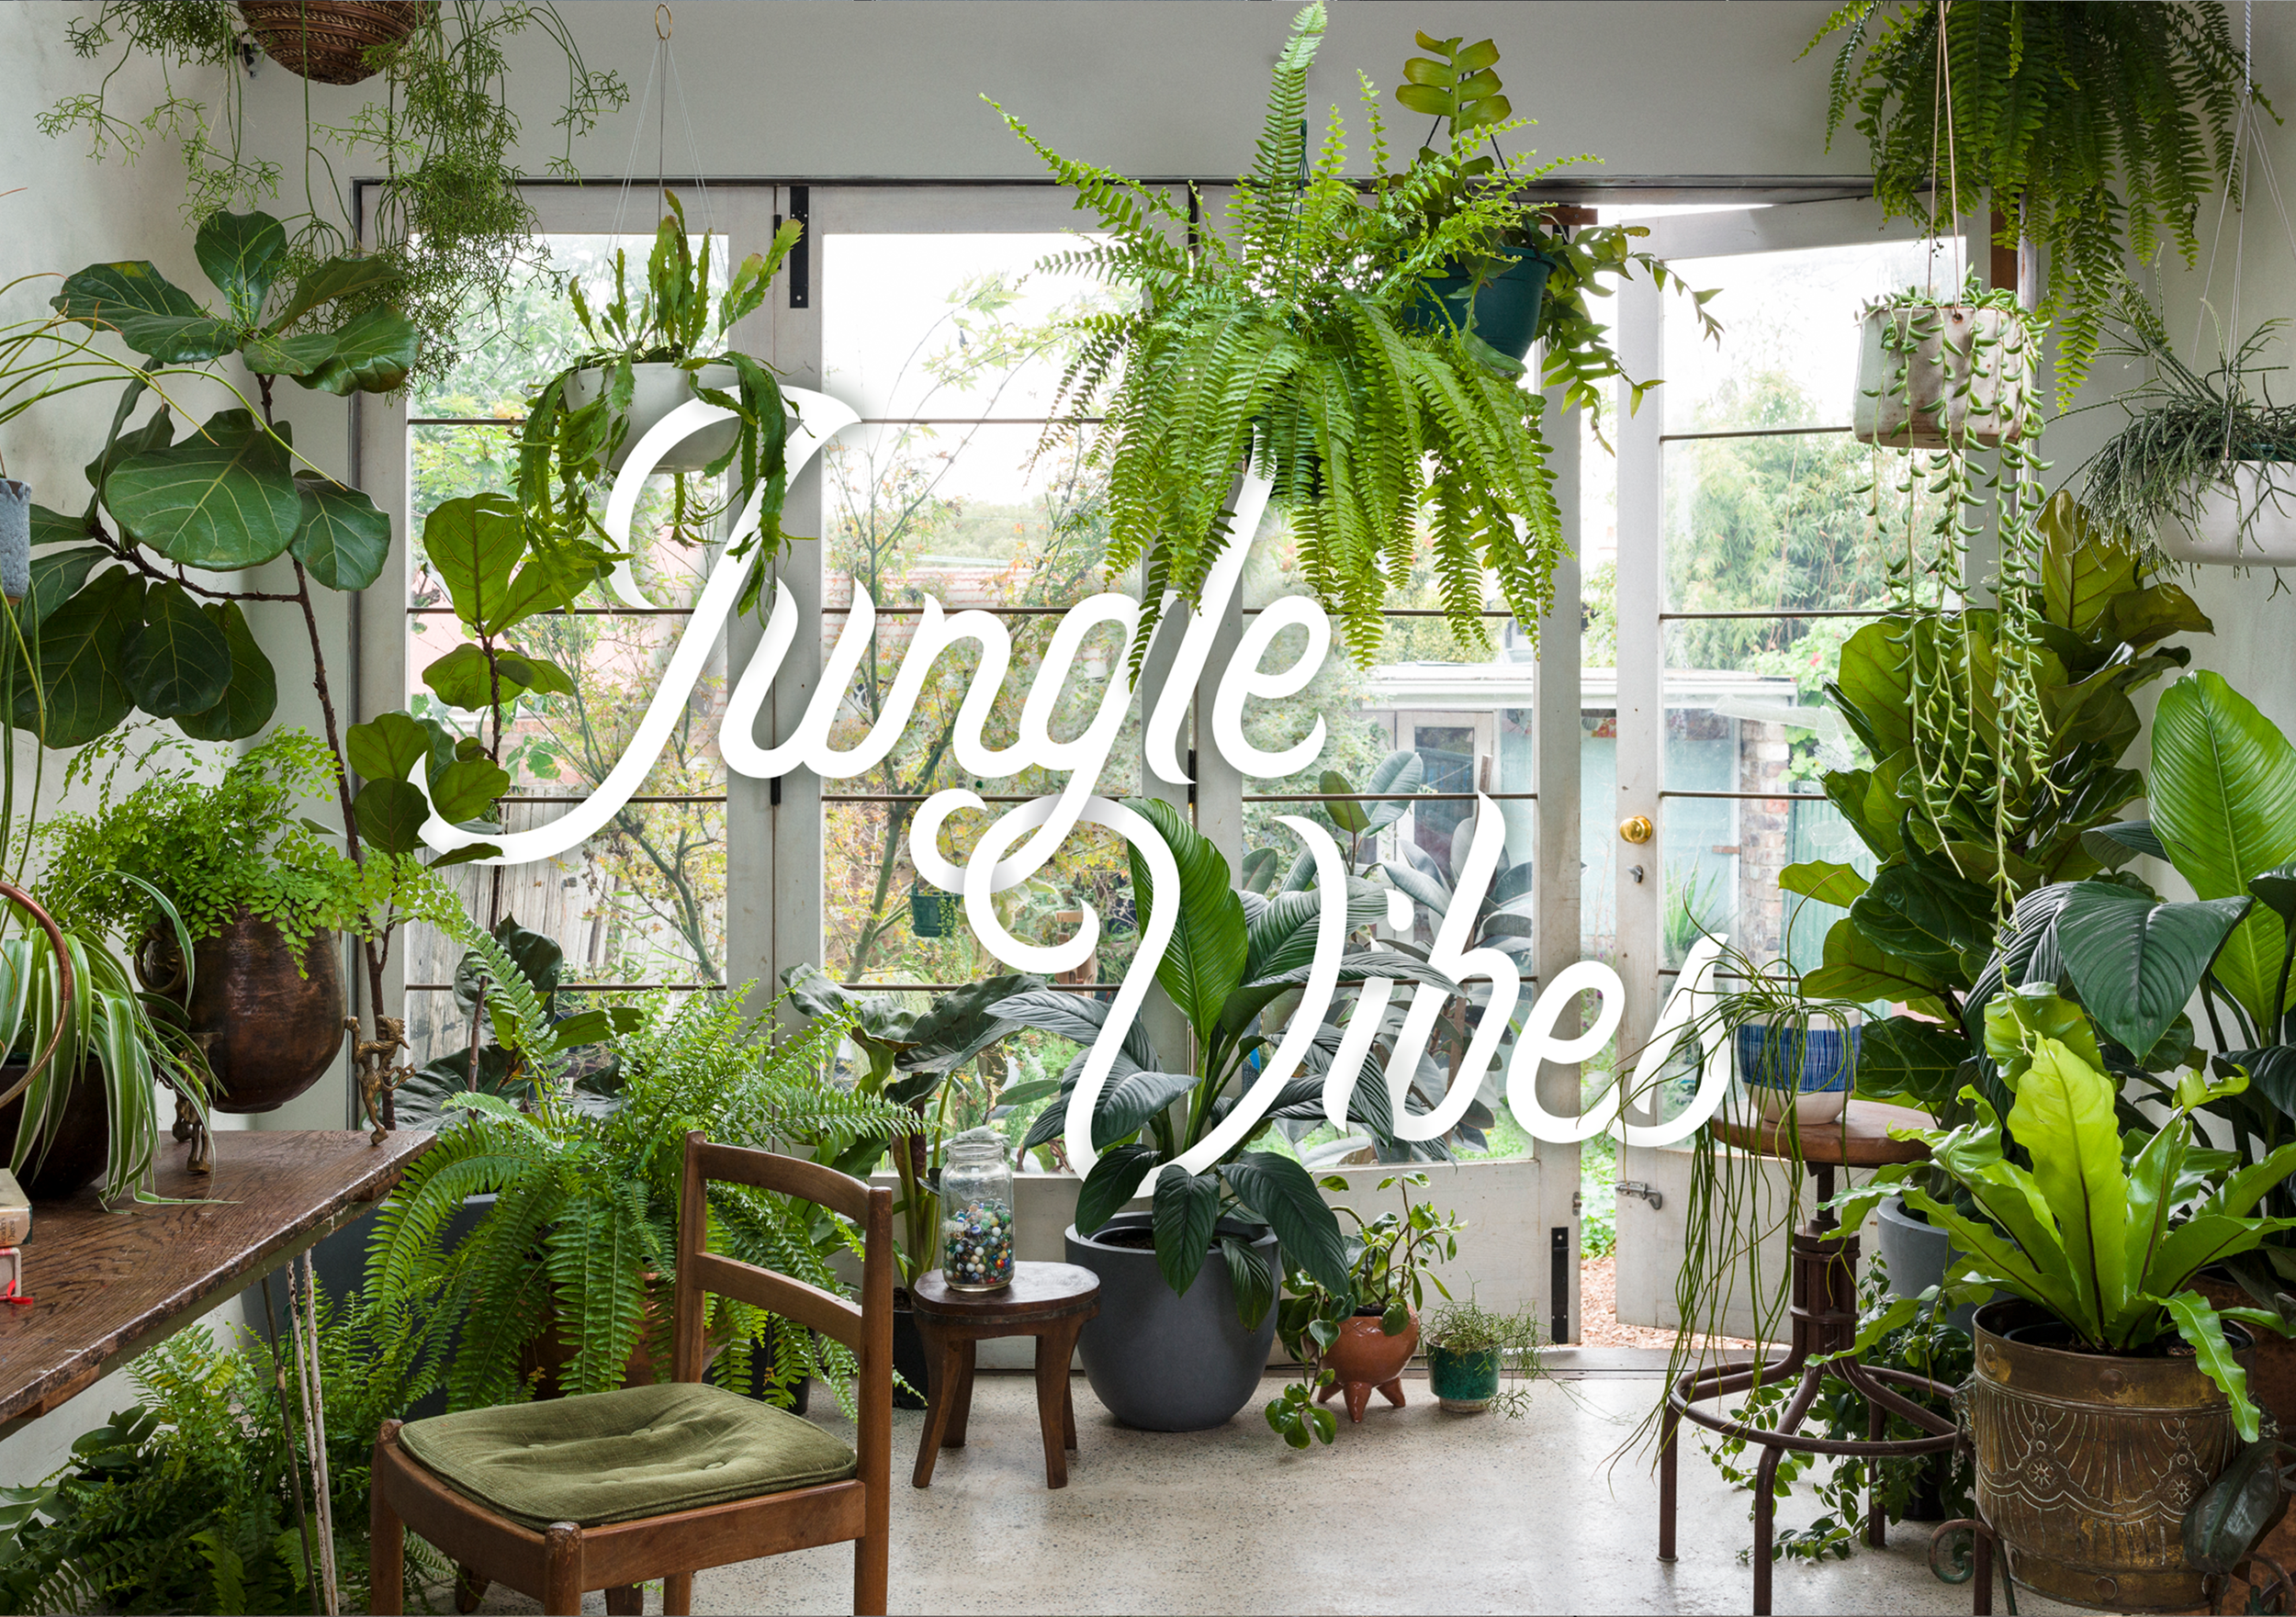 Jungle Vibes - If you're the loose, wild type, then this one's for you. Dripping with lush, tropical plants, it's ideal for those who enjoy low lighting and sleepovers. Grrrr.